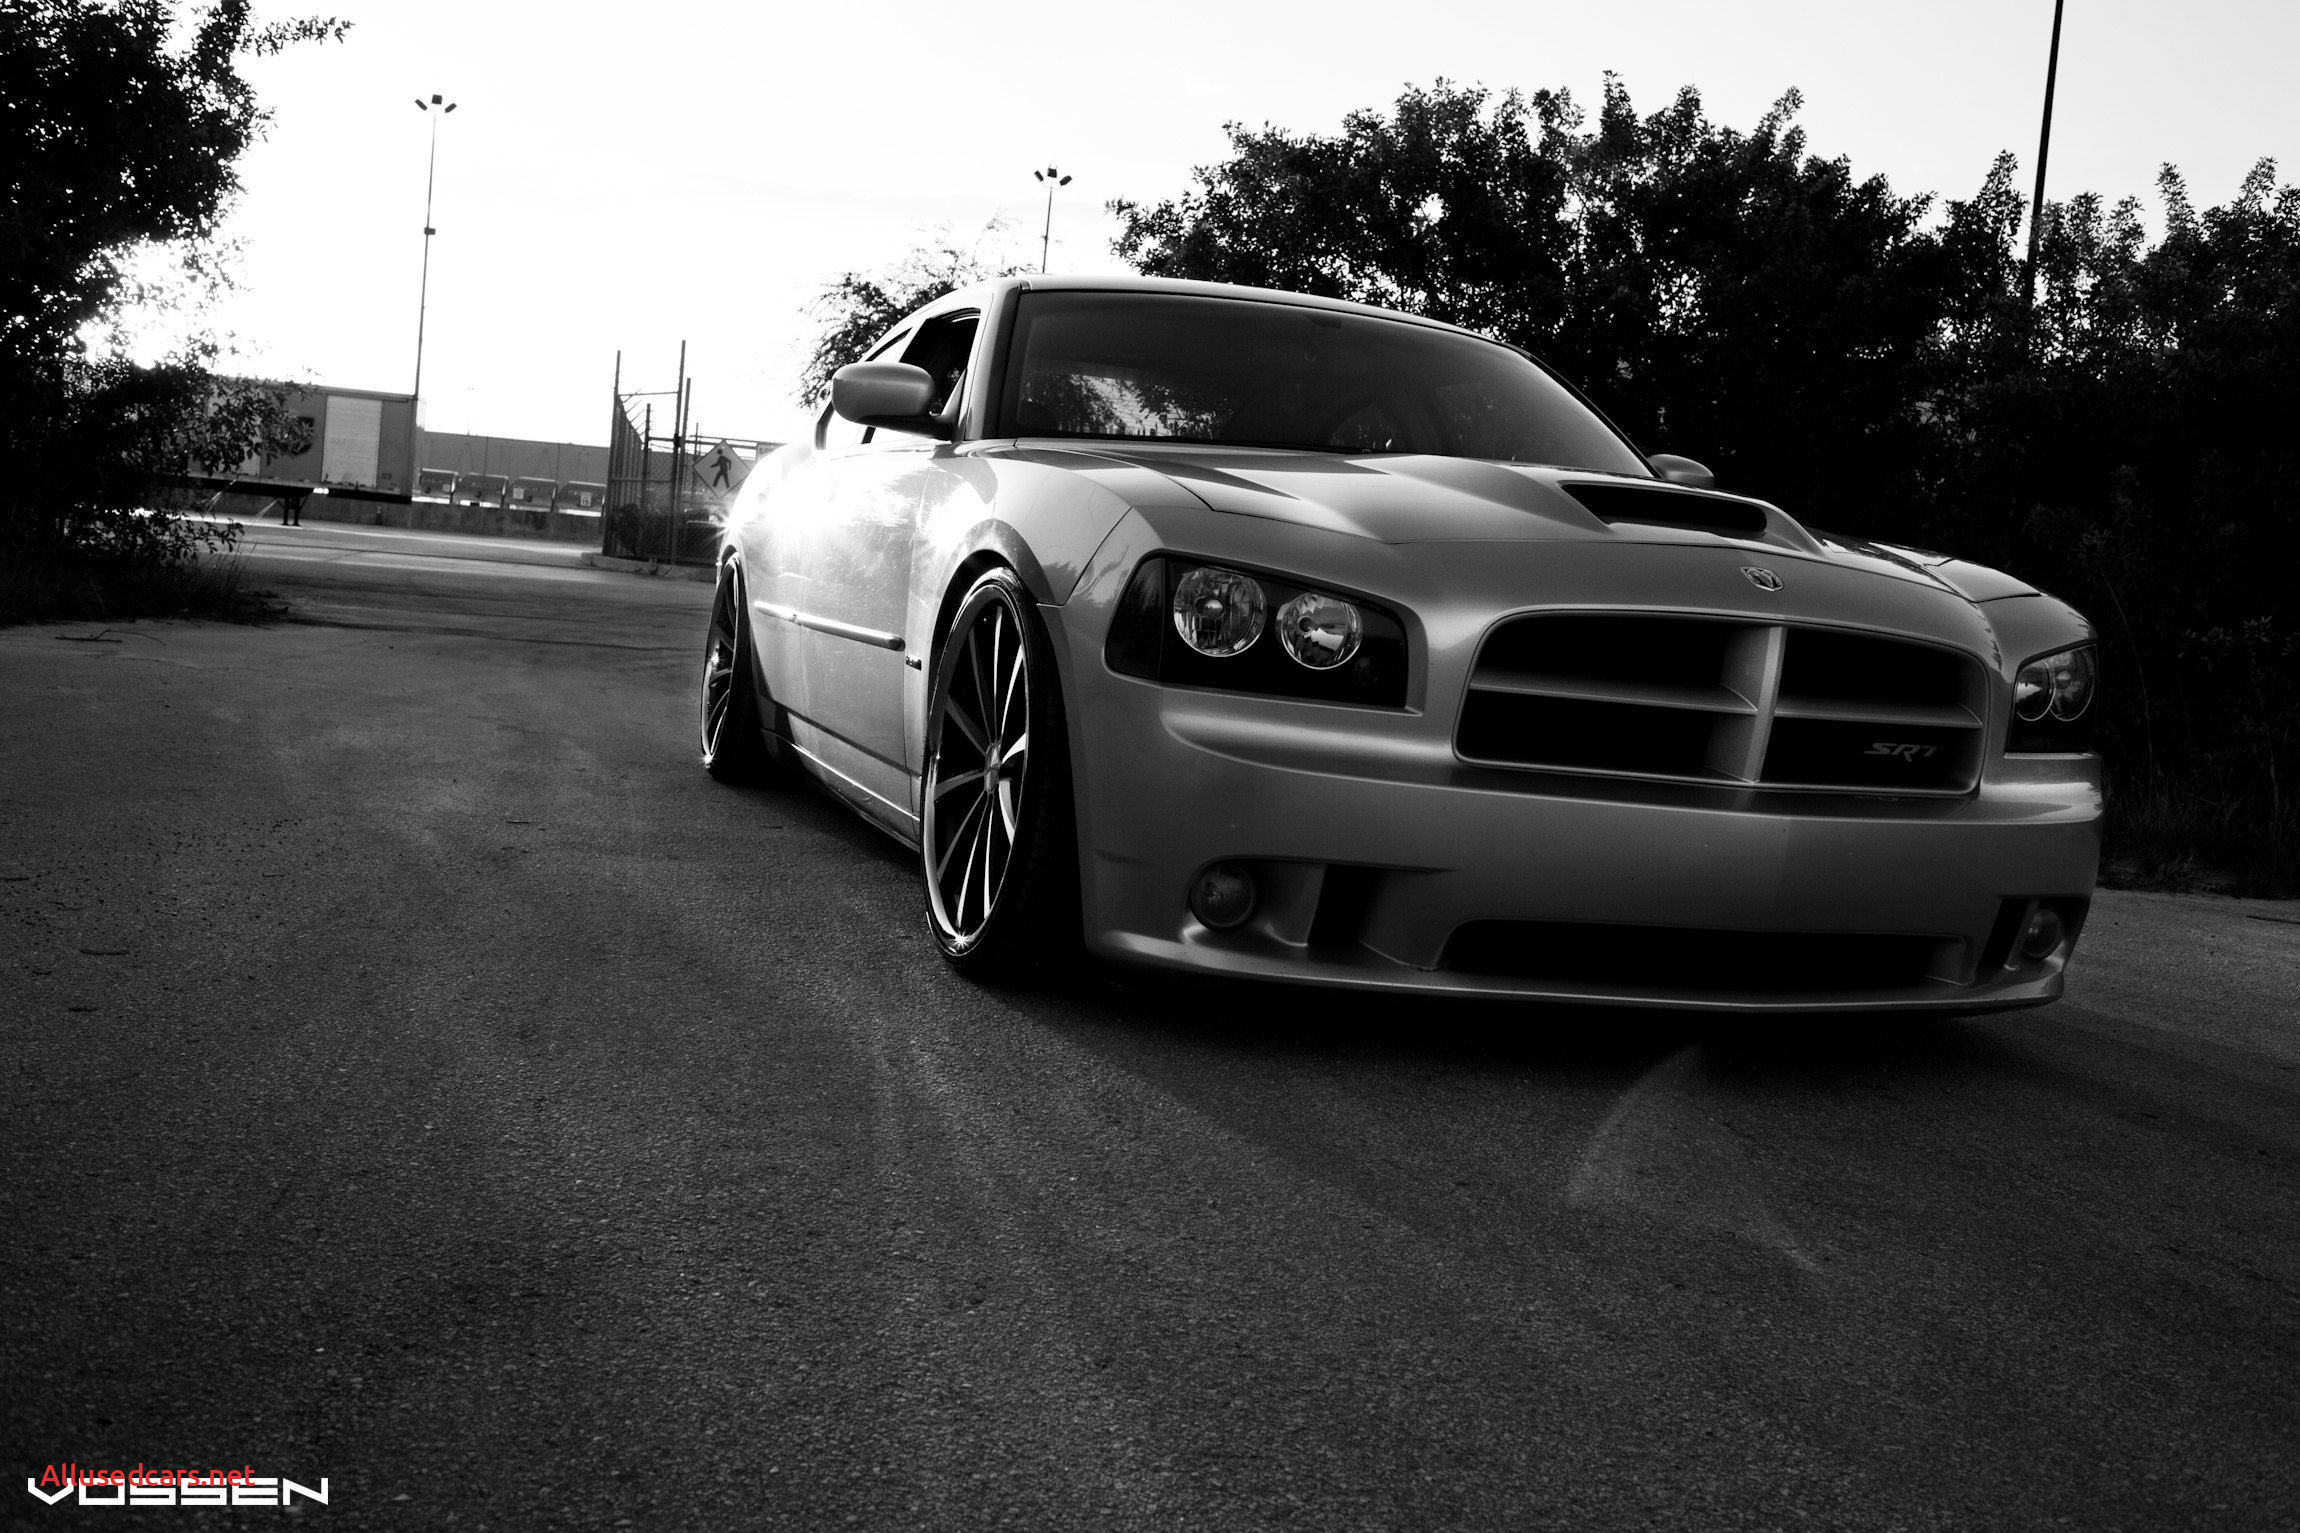 Charger Srt8 Luxury Custom Silver Dodge Charger Next to the Word Amazing In the